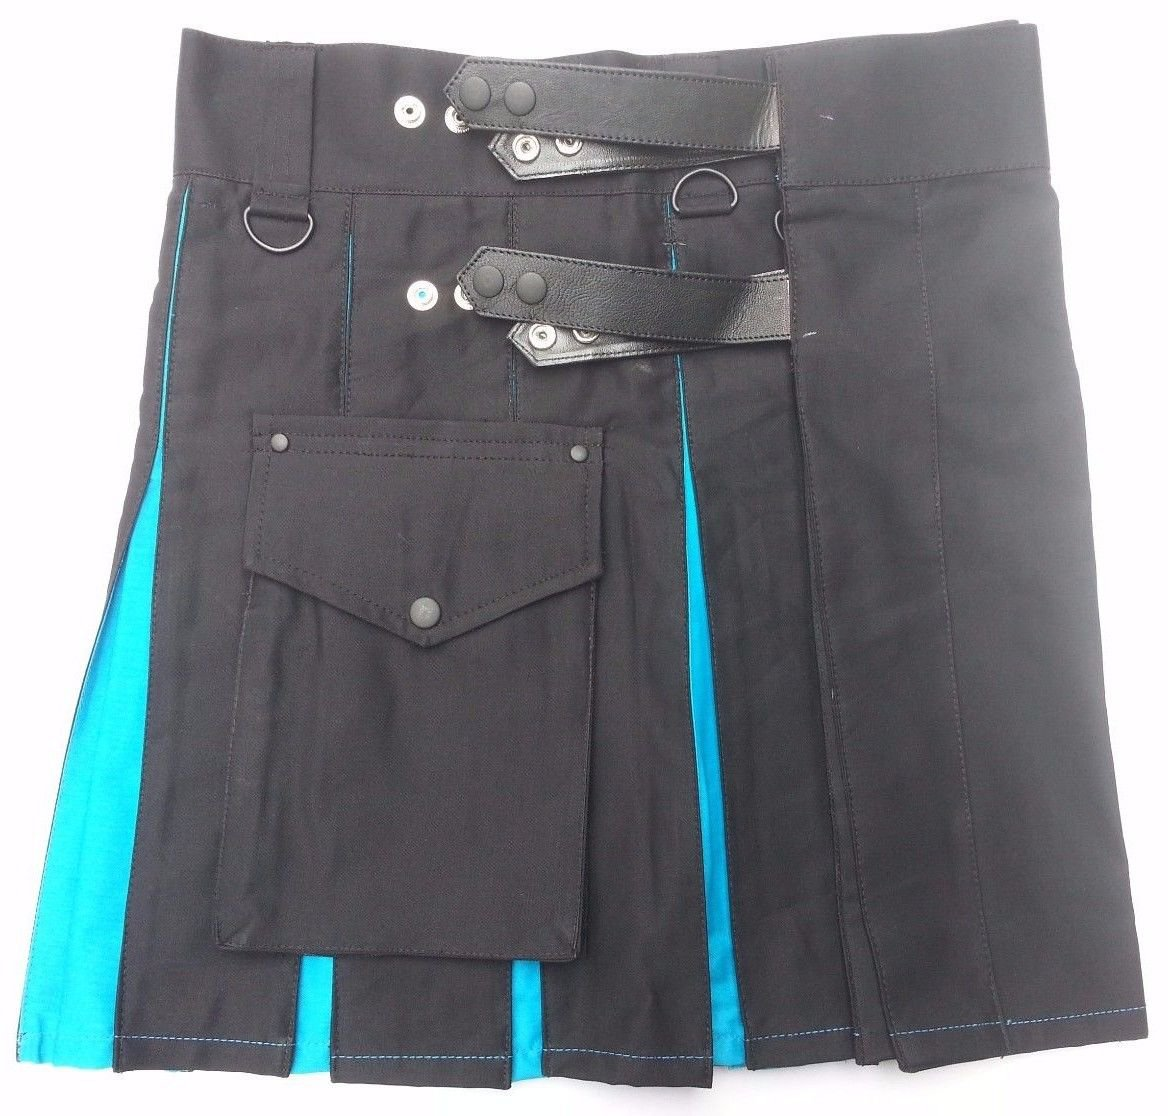 "40"" Ladies TDK Black & Blue Cotton Hybrid Kilt, Leather Straps Tactical Duty Kilt Black/Blue Cotton"